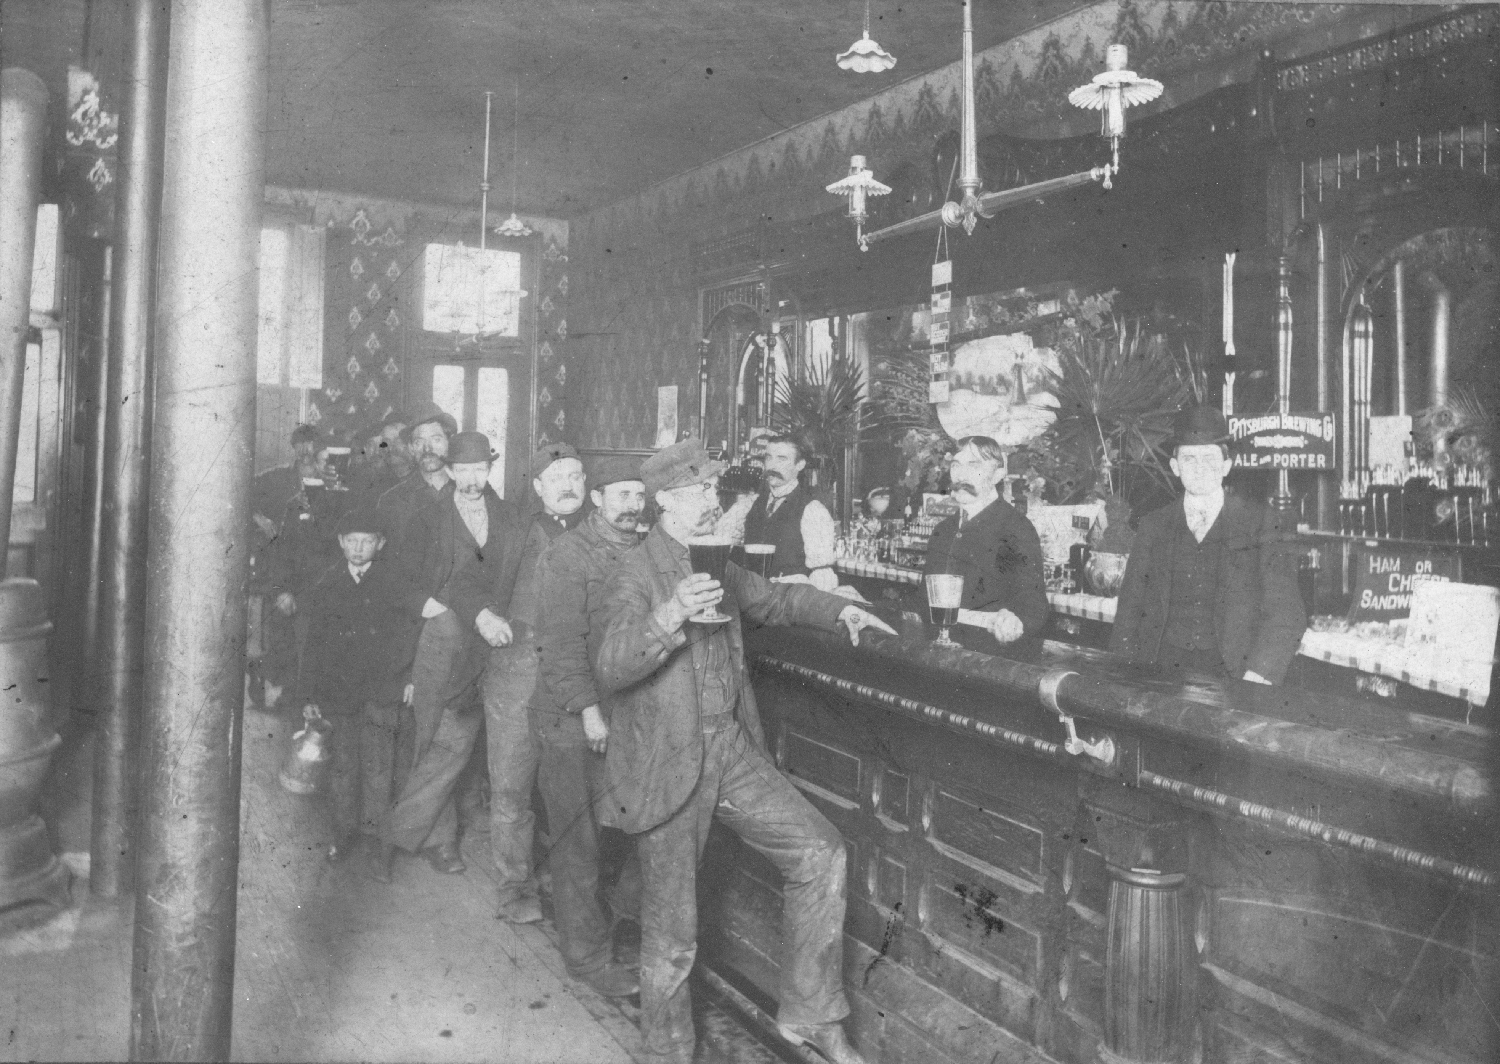 Waiting in line for a beer at a Pittsburgh saloon, c. 1910. General Photo Collection, Detre Library & Archives, Heinz History Center.